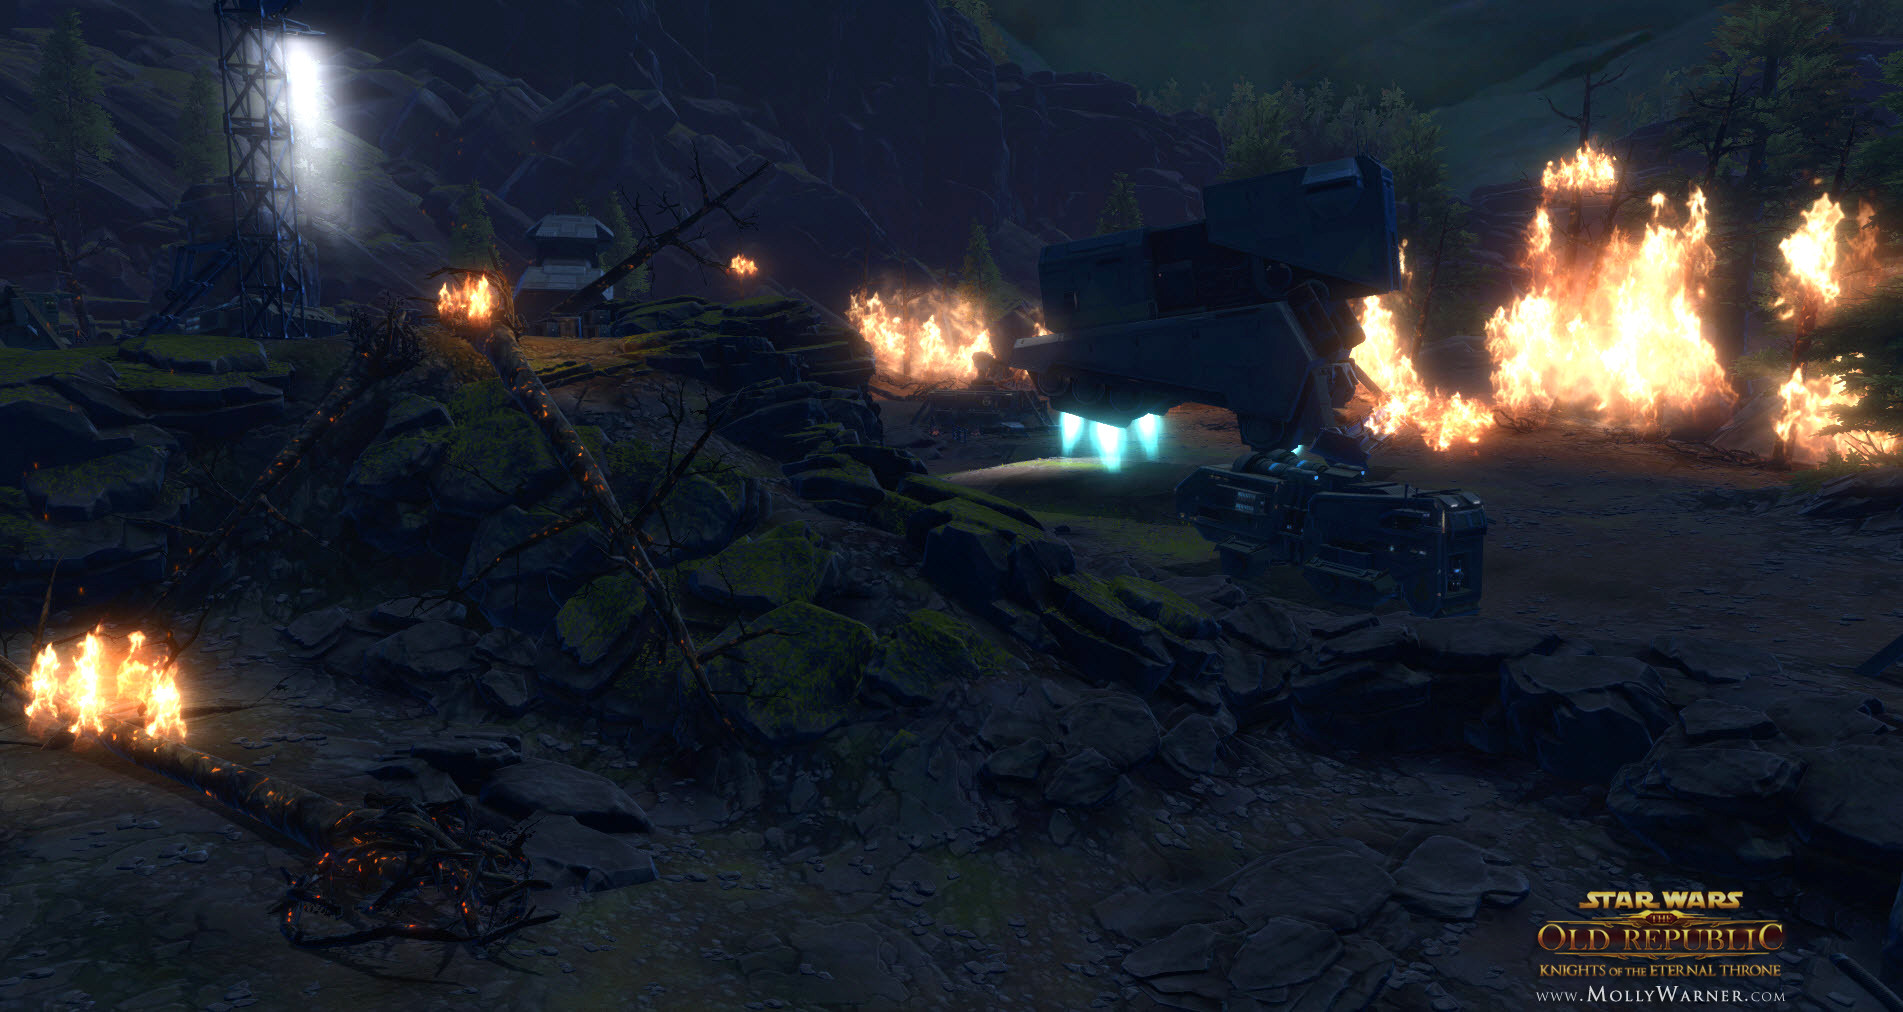 Enemy Zakuul forces destroying Odessen forests